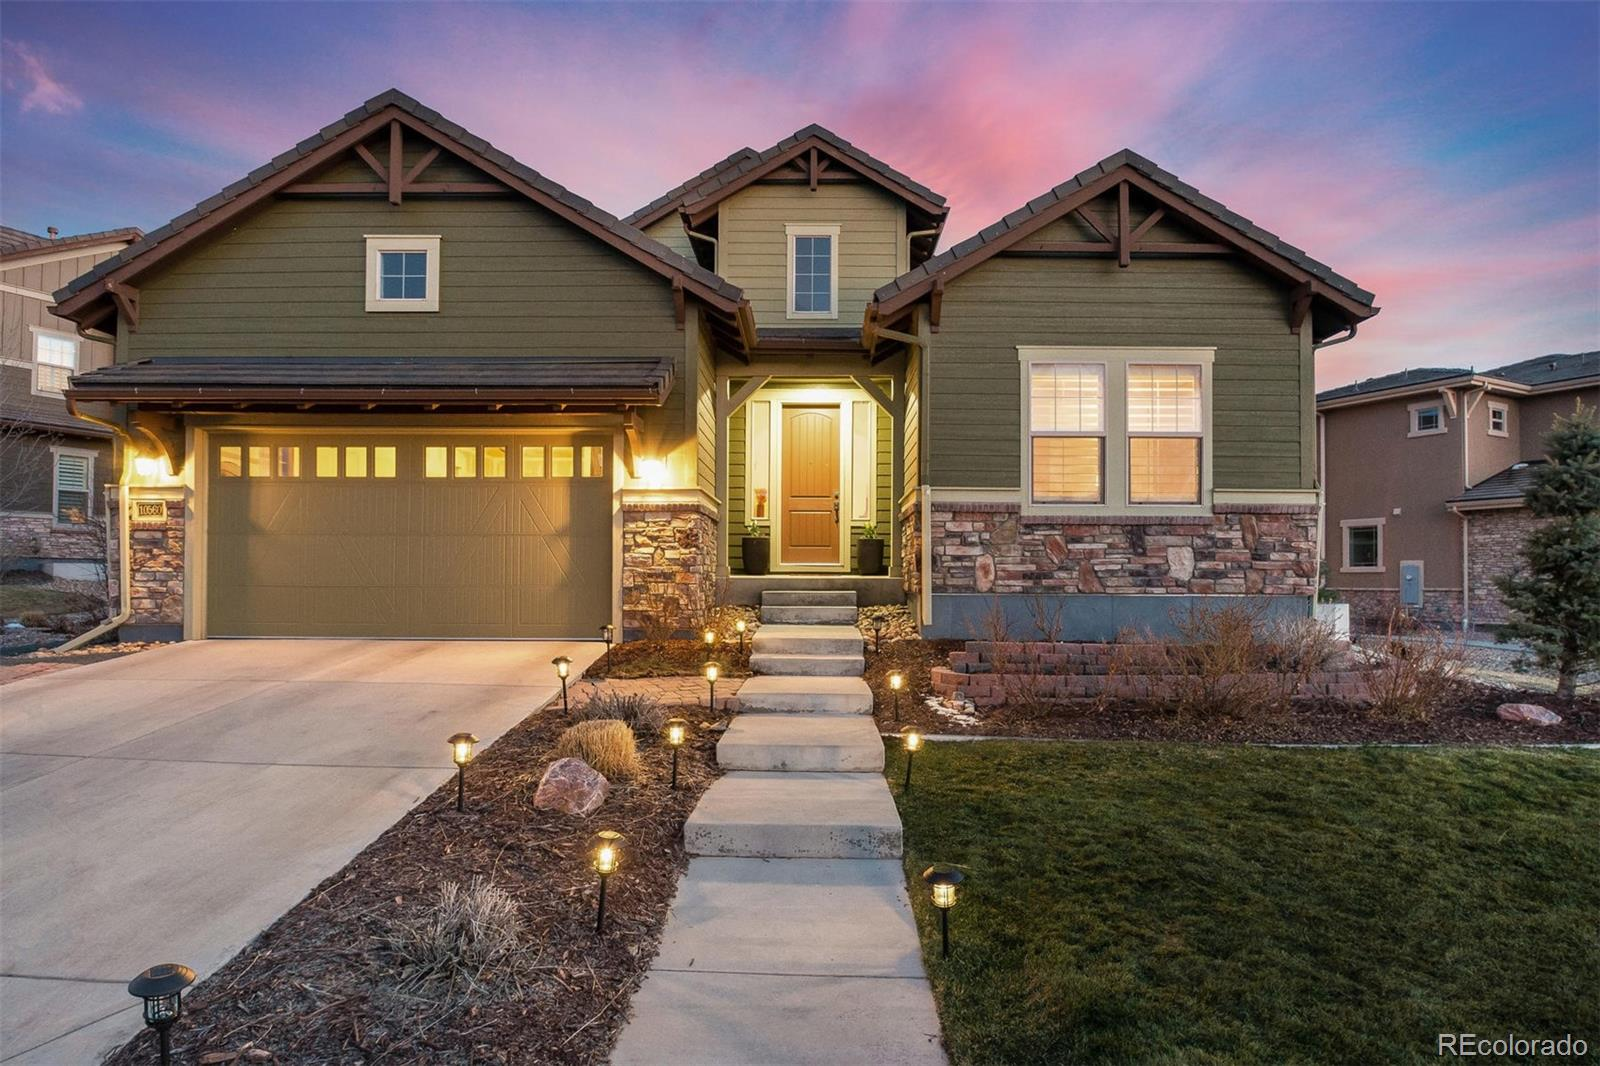 10560 Soulmark Way, Highlands Ranch, CO 80126 - Highlands Ranch, CO real estate listing